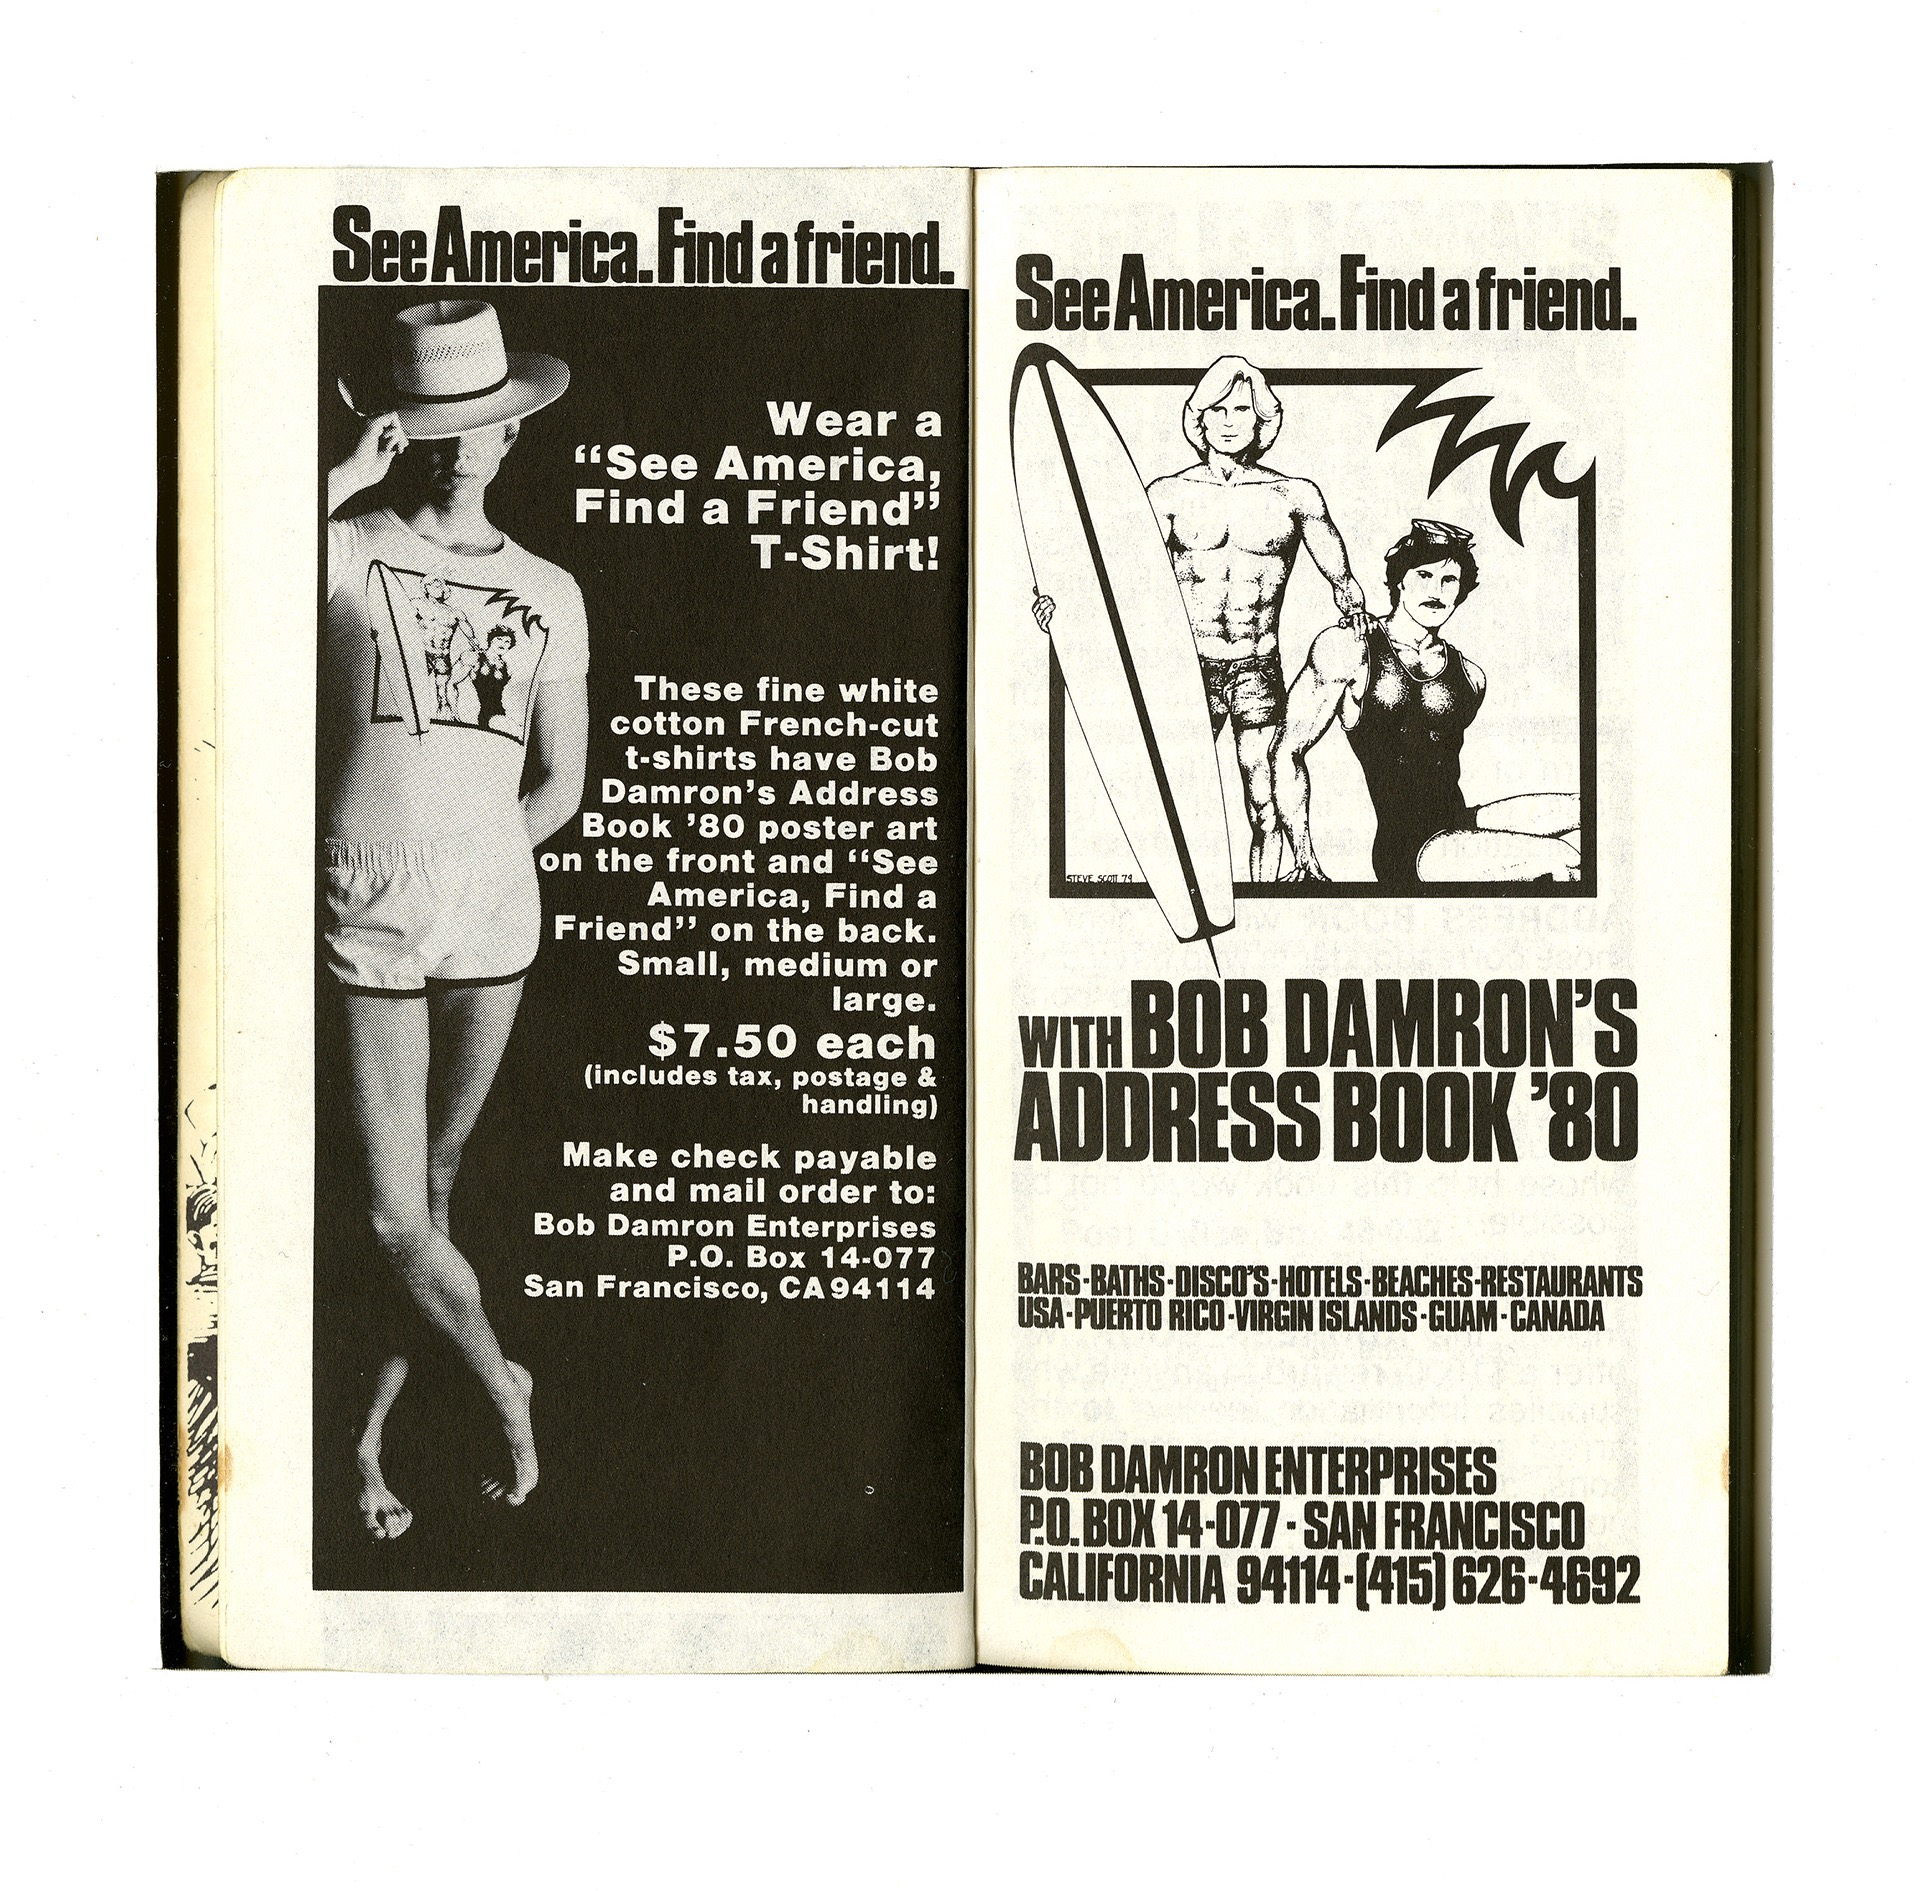 Interior pages from the 1980 Los Angeles edition of the Damron Guide.